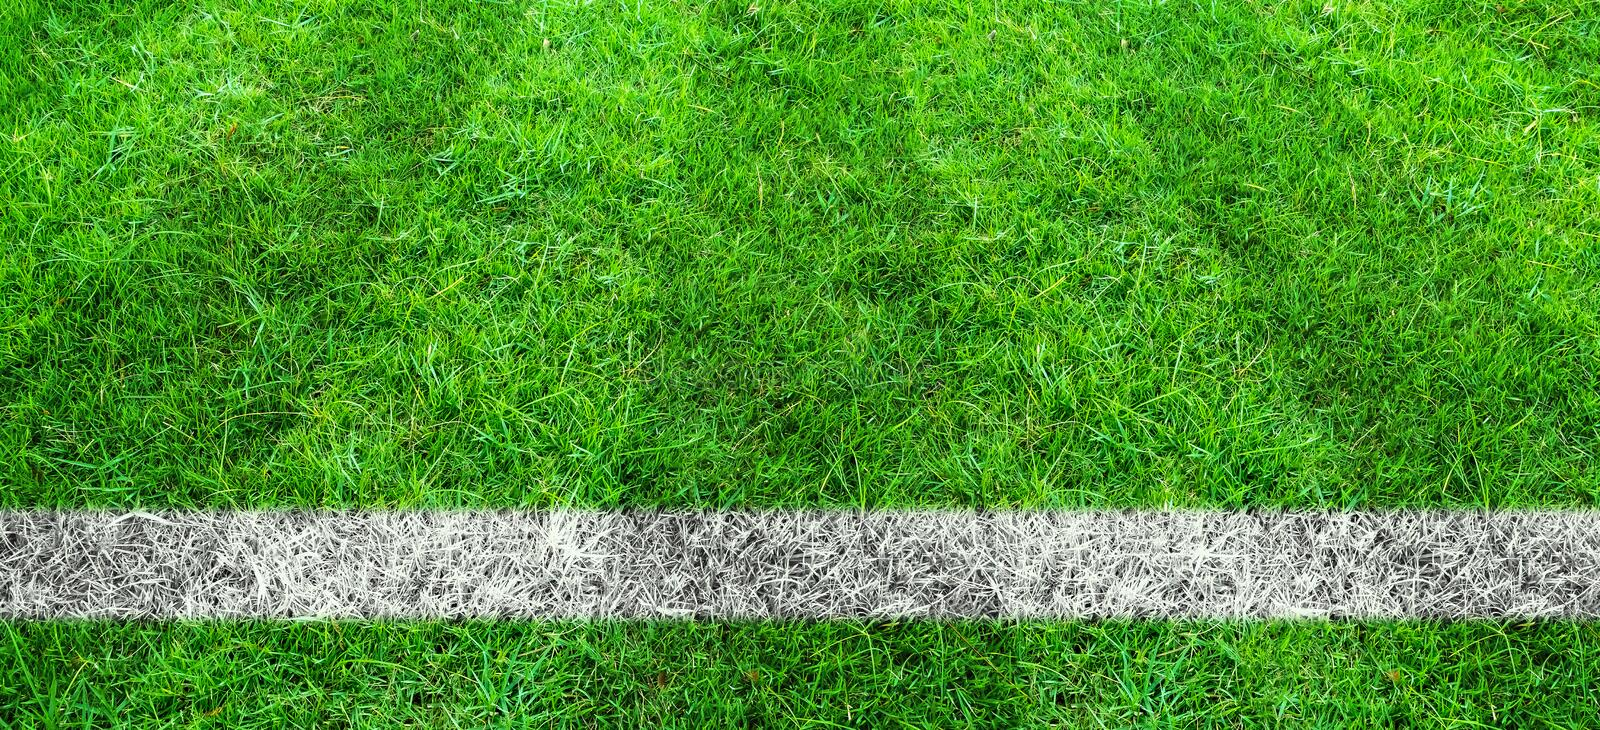 Soccer line in green grass of soccer field. Green lawn field pattern for background. Soccer line in green grass of soccer field. Green lawn field pattern for stock photo